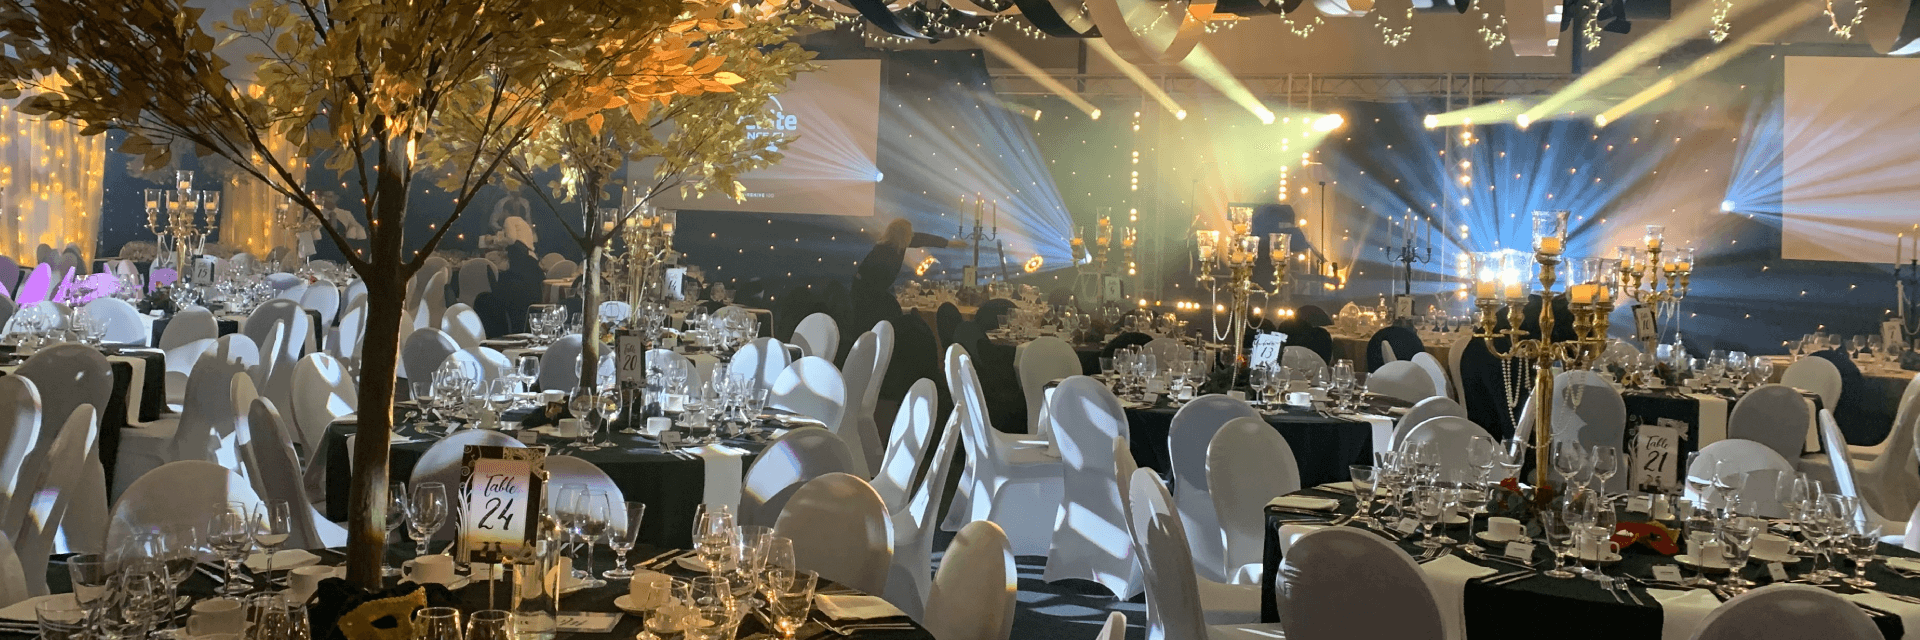 Unique Event Location, Set Up With An Autumn Style Theme